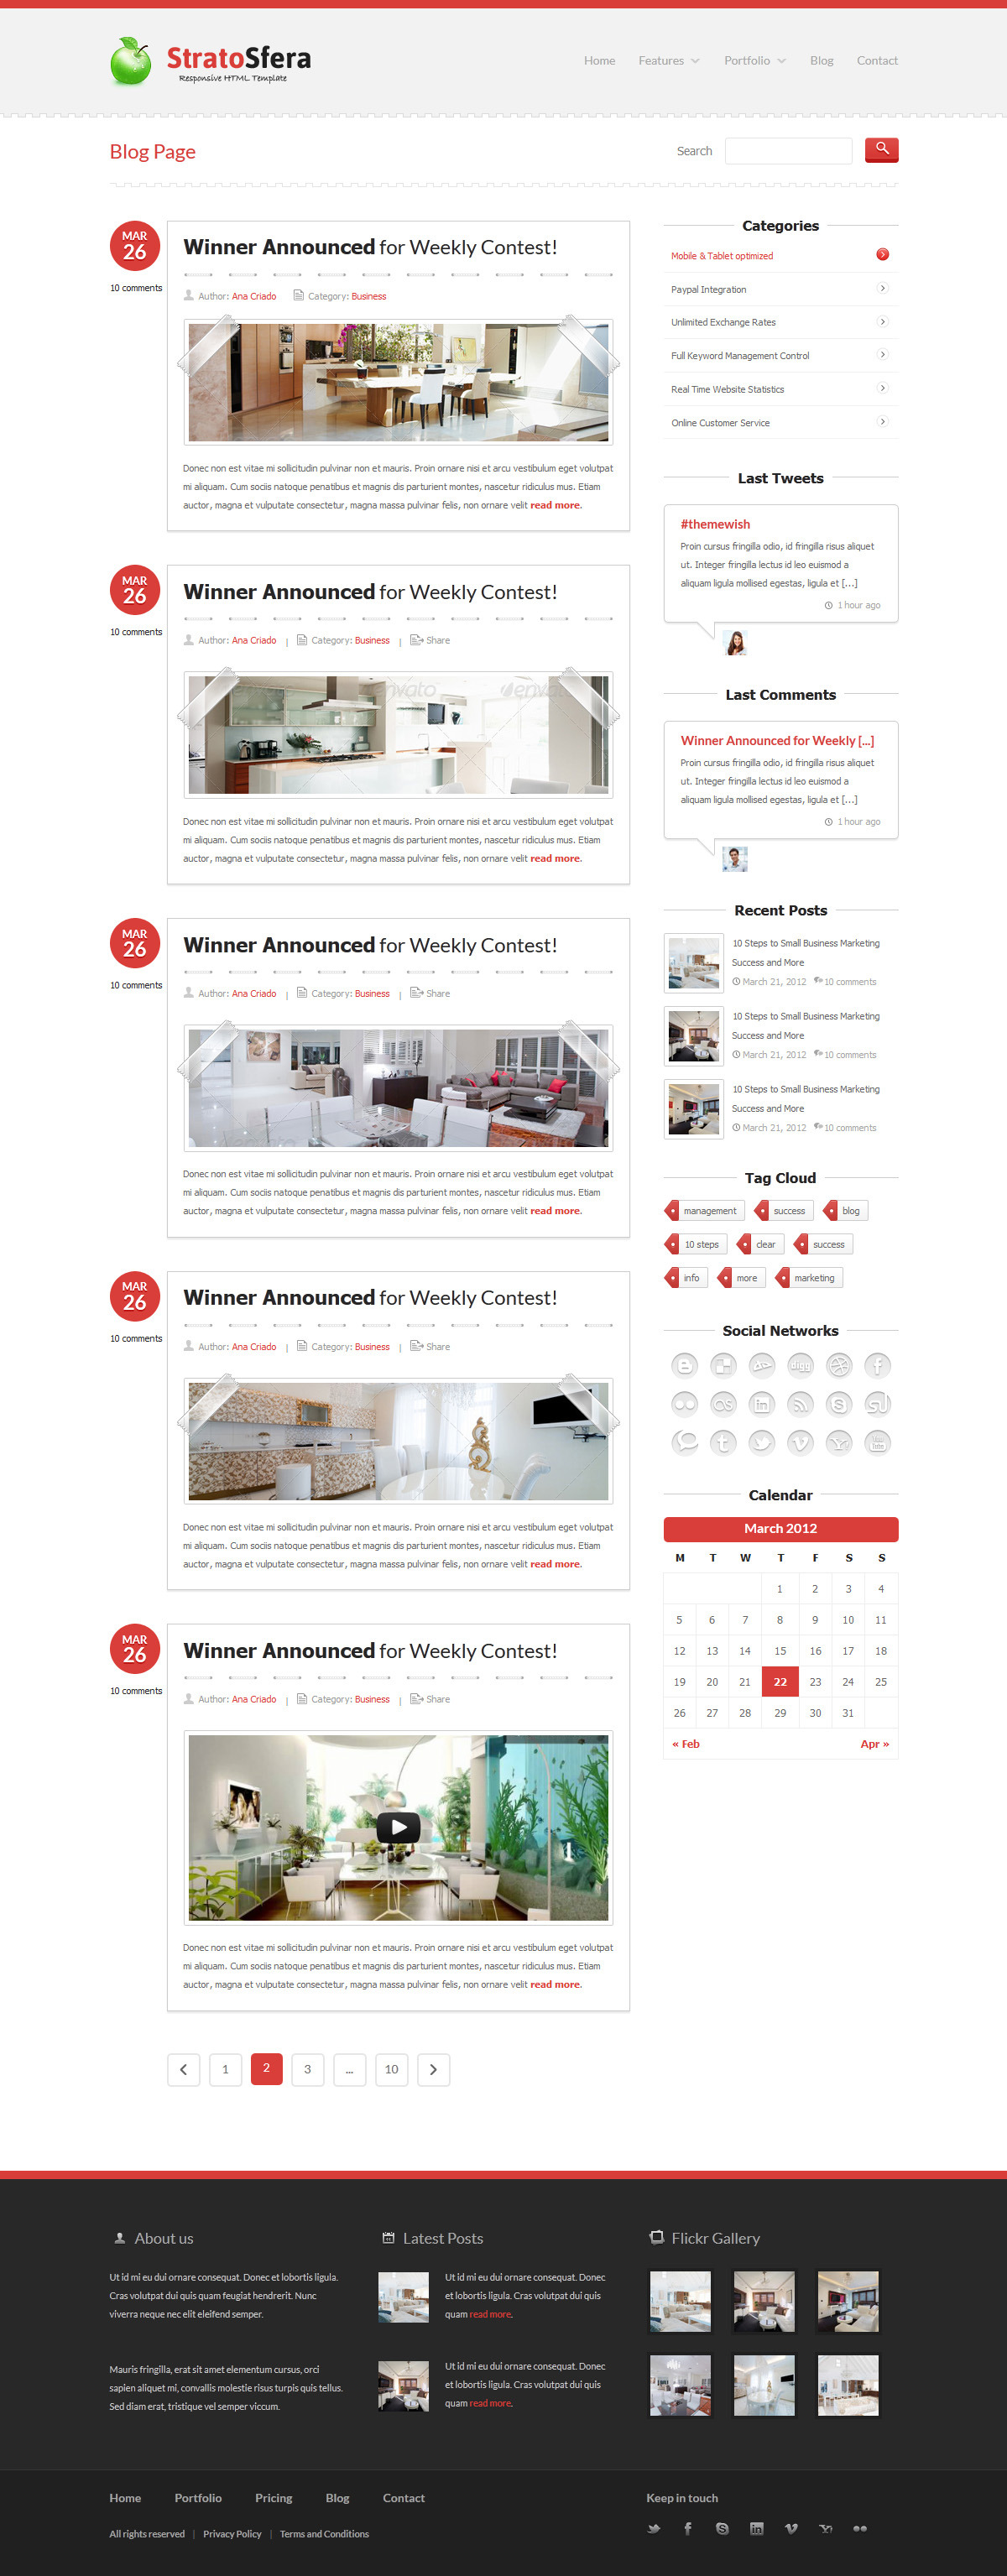 StratoSfera - Responsive Template - Header includes: